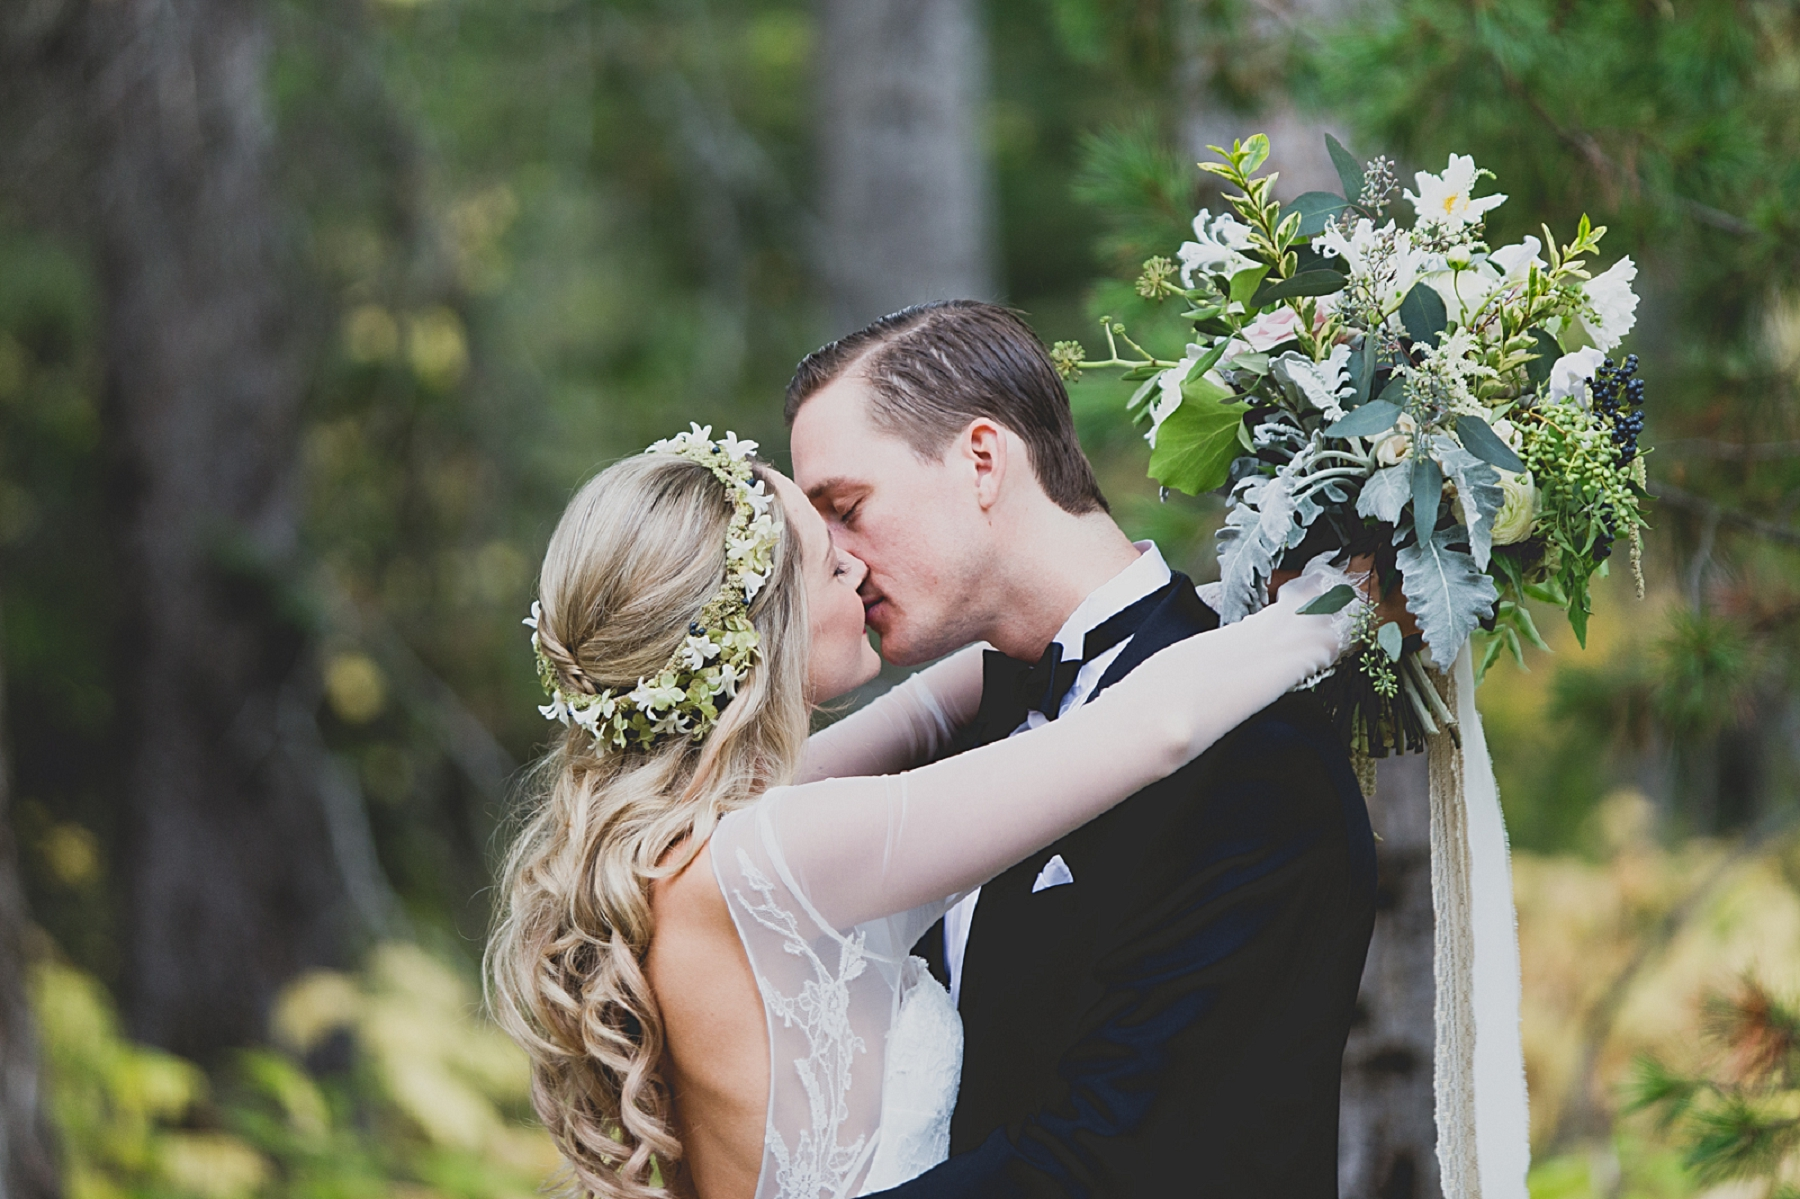 Jennifer_Mooney_Photo_glacier_park_wedding_Beargrass_florals_fall_wedding_elegant_montana_destination_velvet_bride_katie_may_dress_verona_gown_00151.jpg